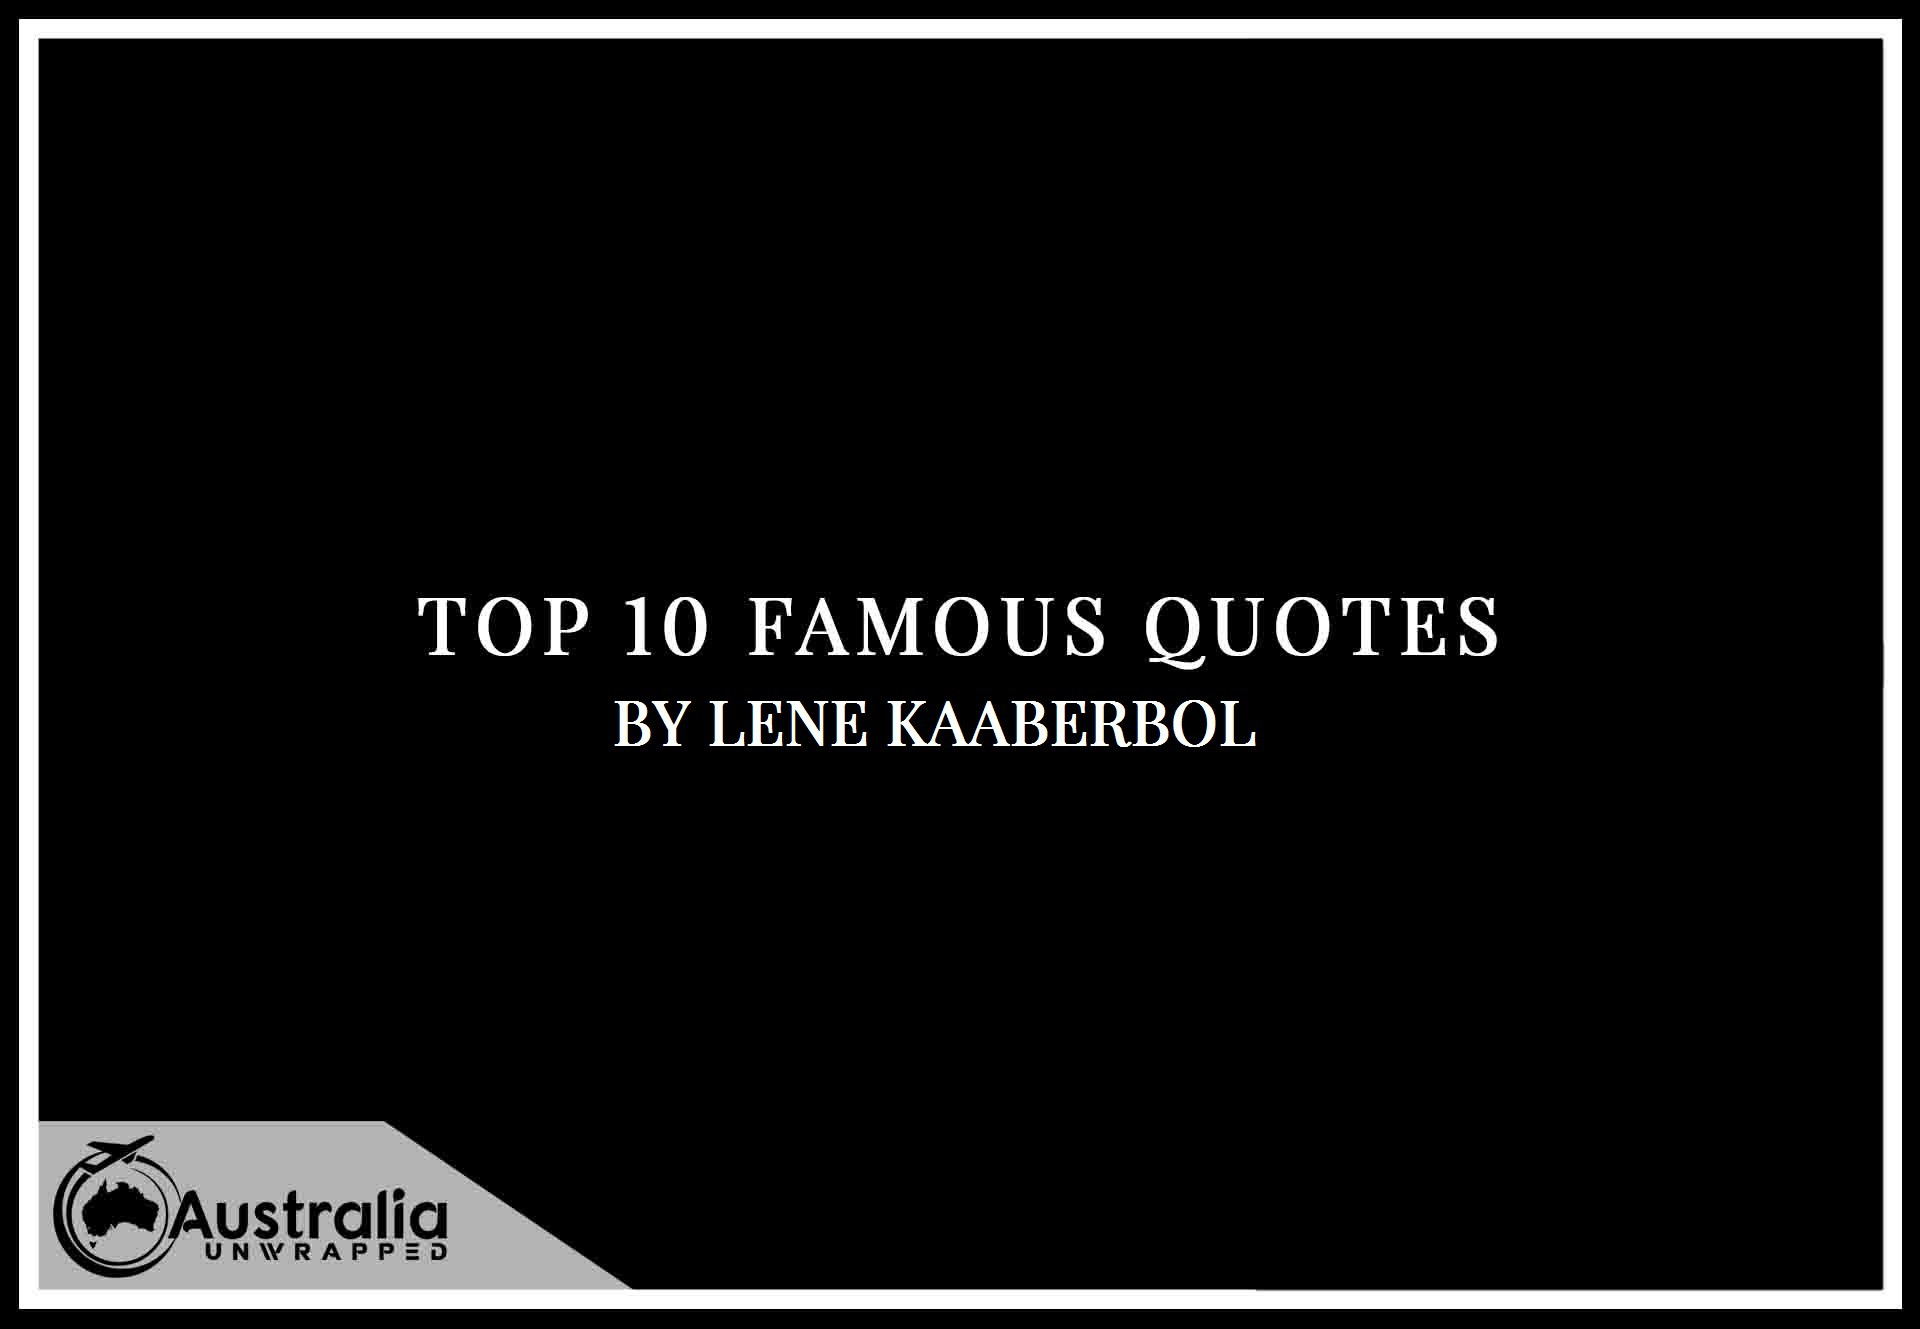 Lene Kaaberbol's Top 10 Popular and Famous Quotes